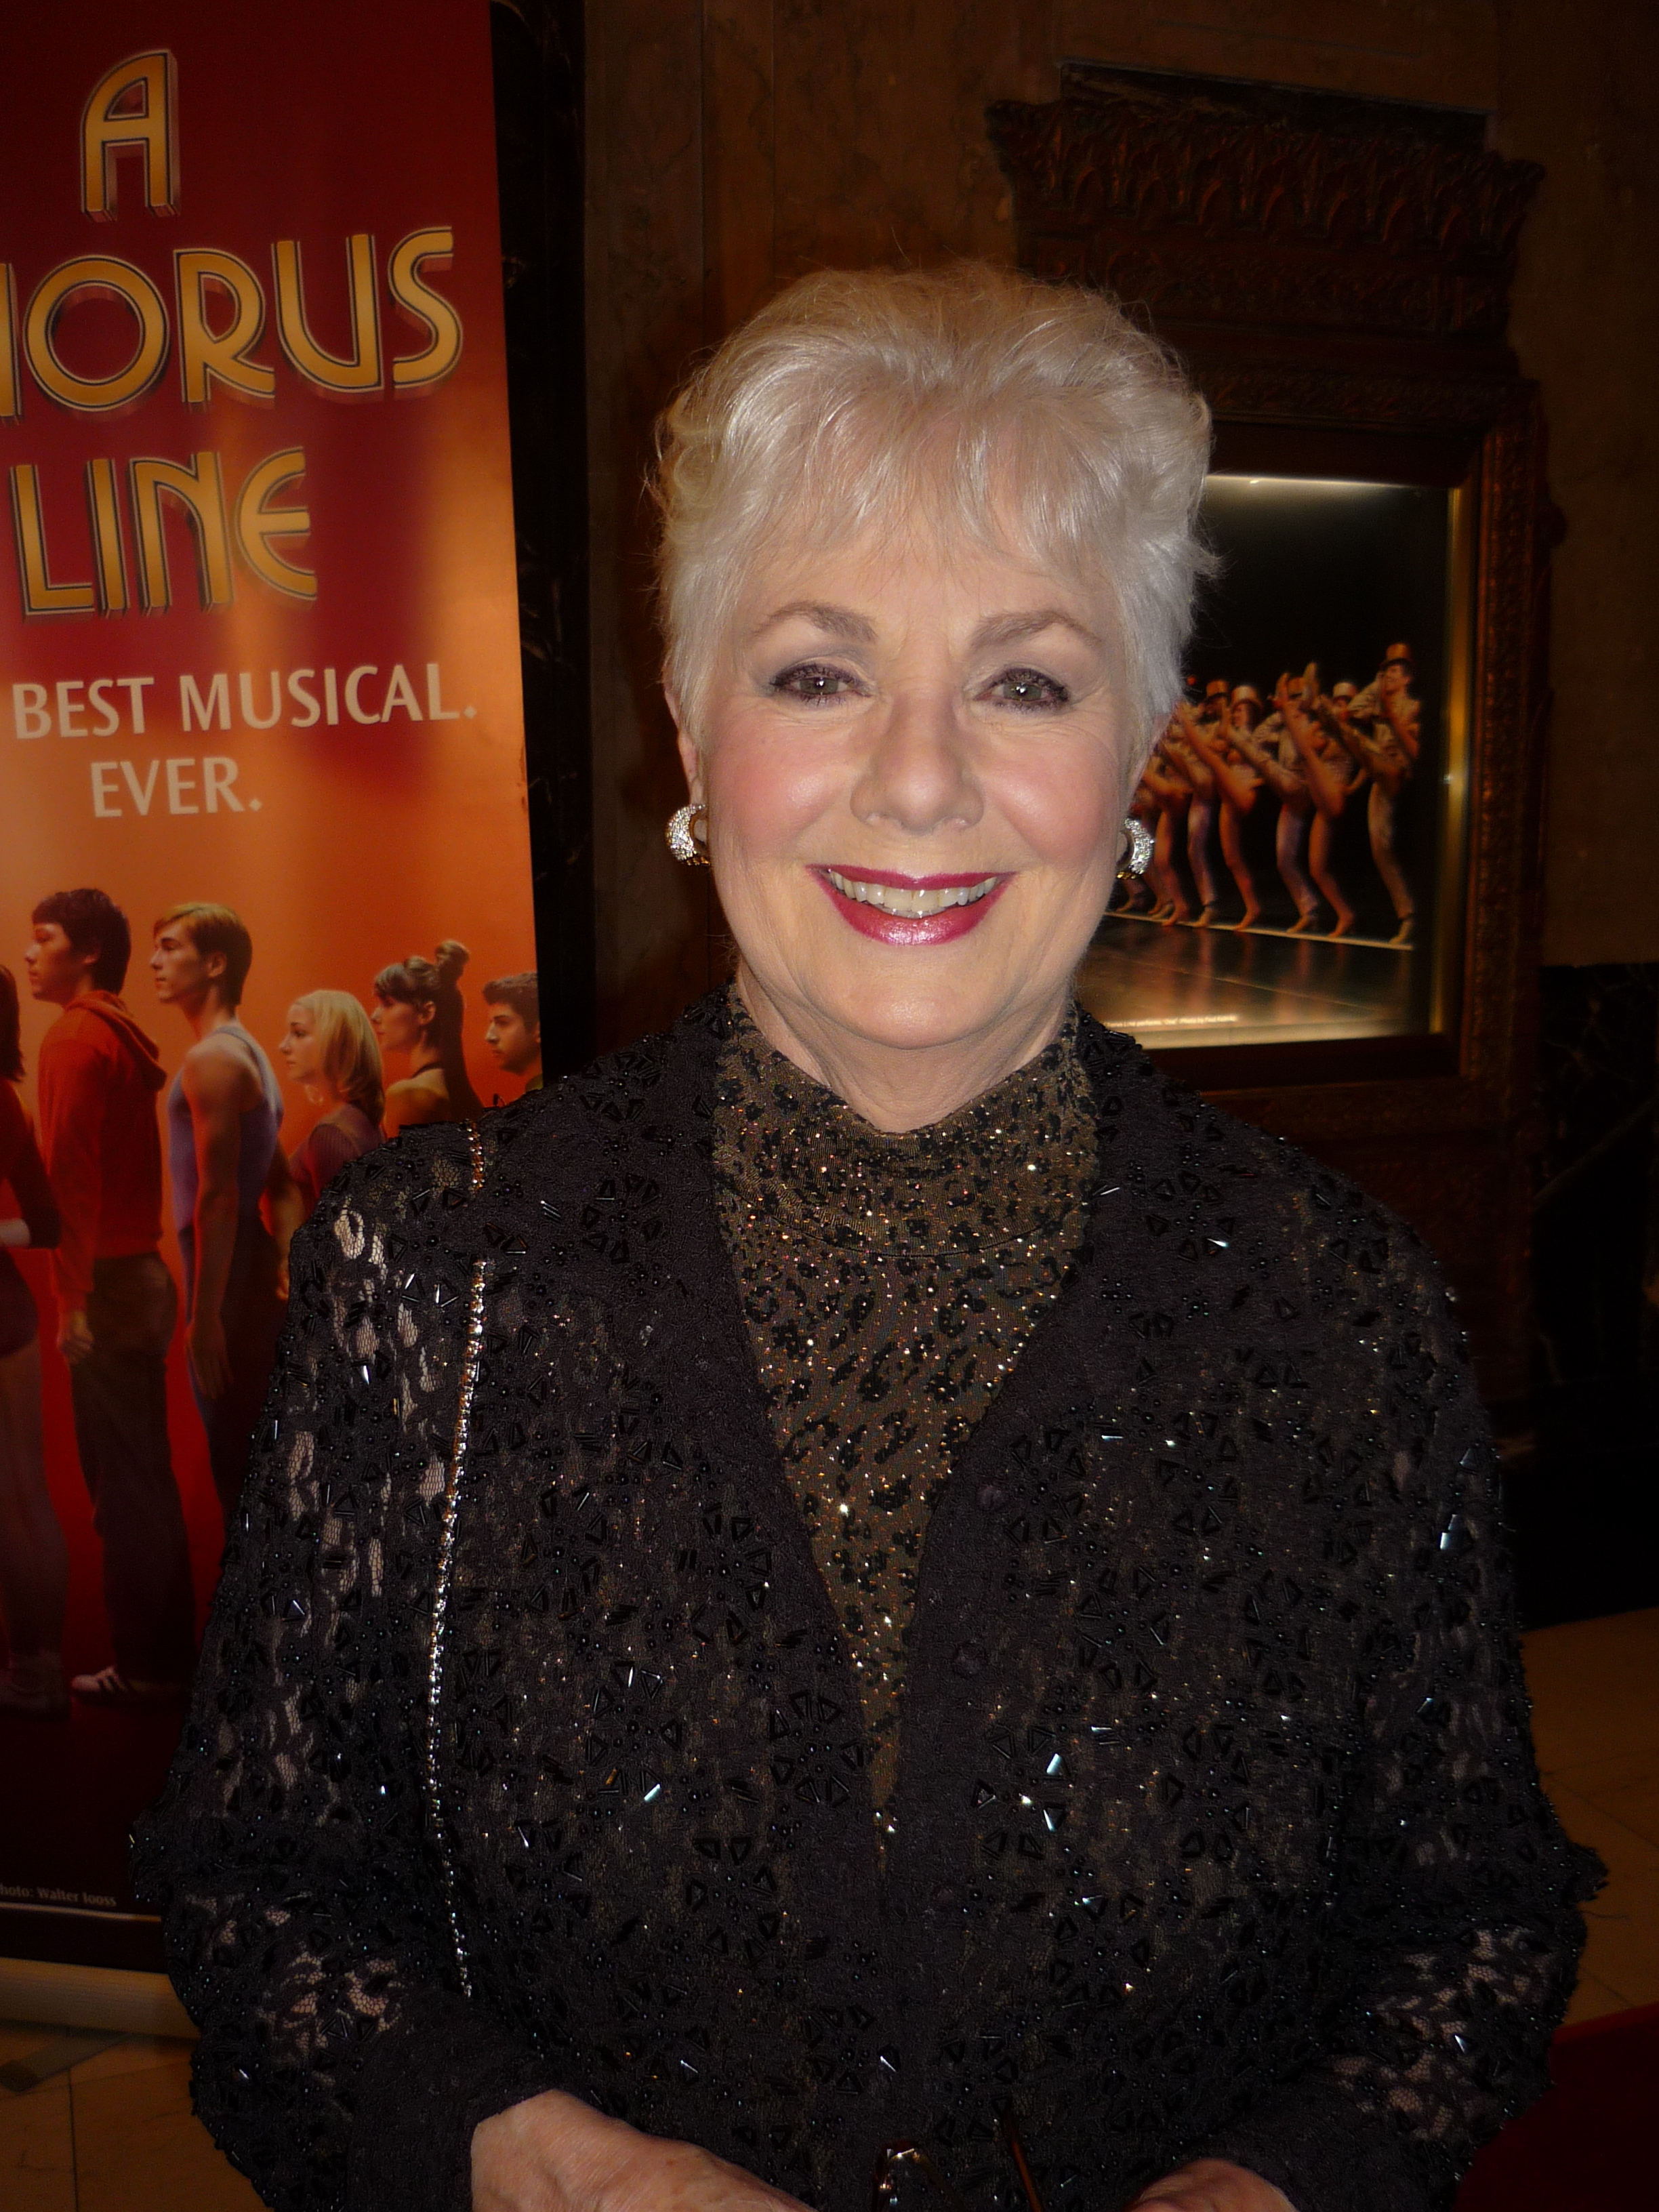 Discussion on this topic: Lisa Regina, shirley-jones-born-march-31-1934-age/